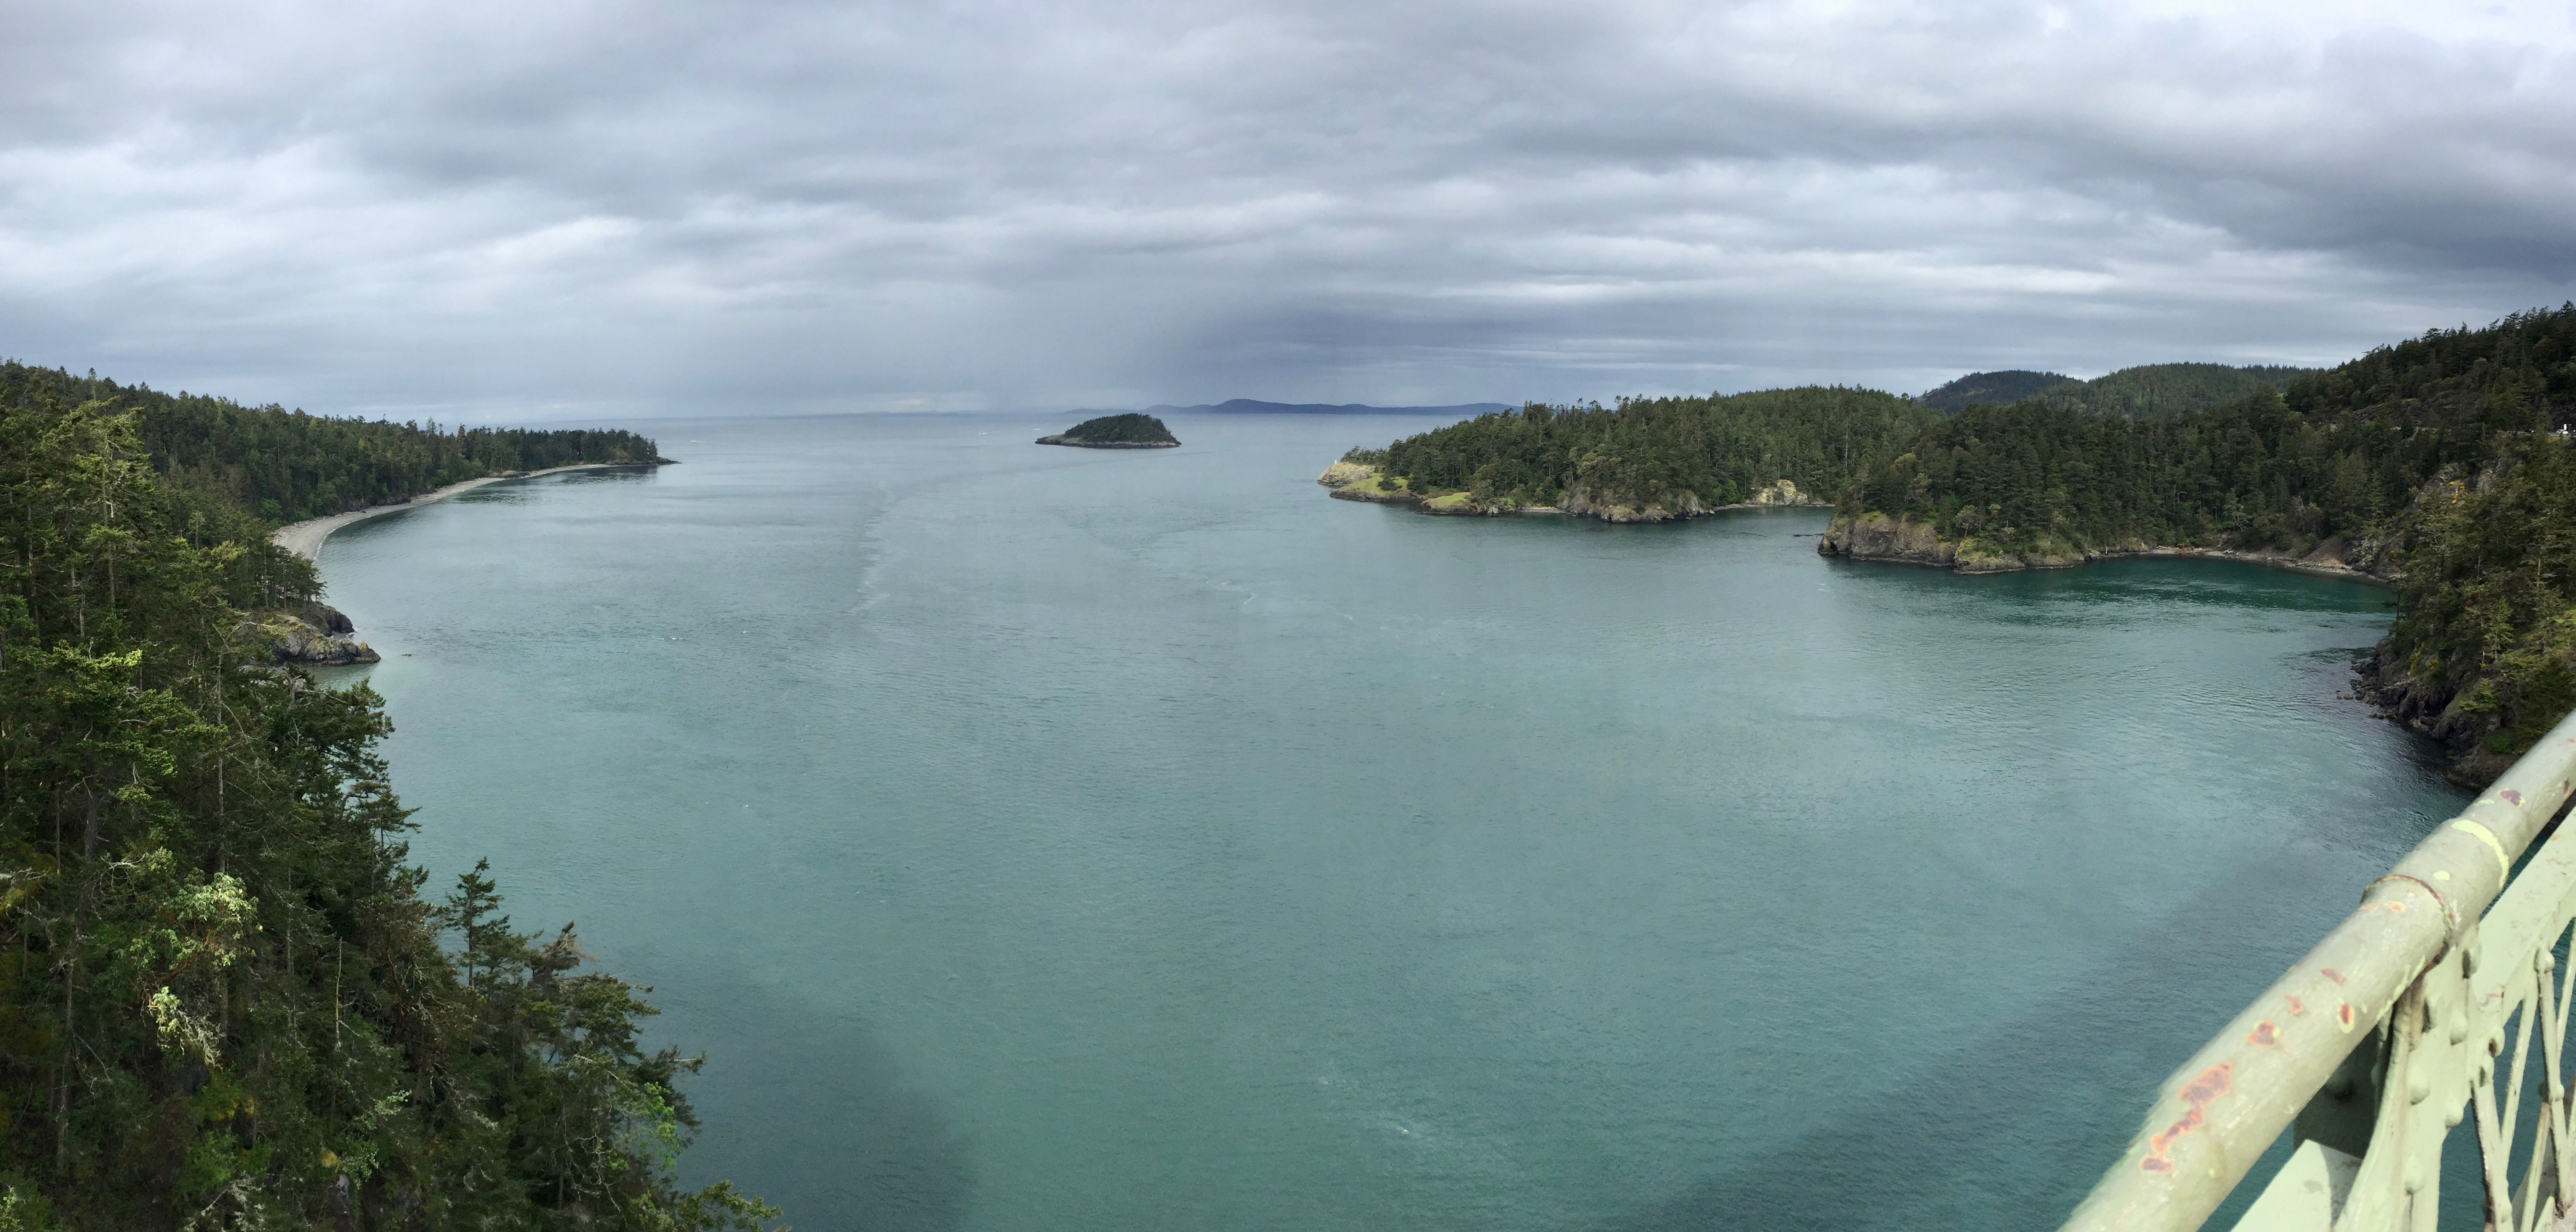 Weekend Getaway to Whidbey Island, View from Deception Pass Bridge